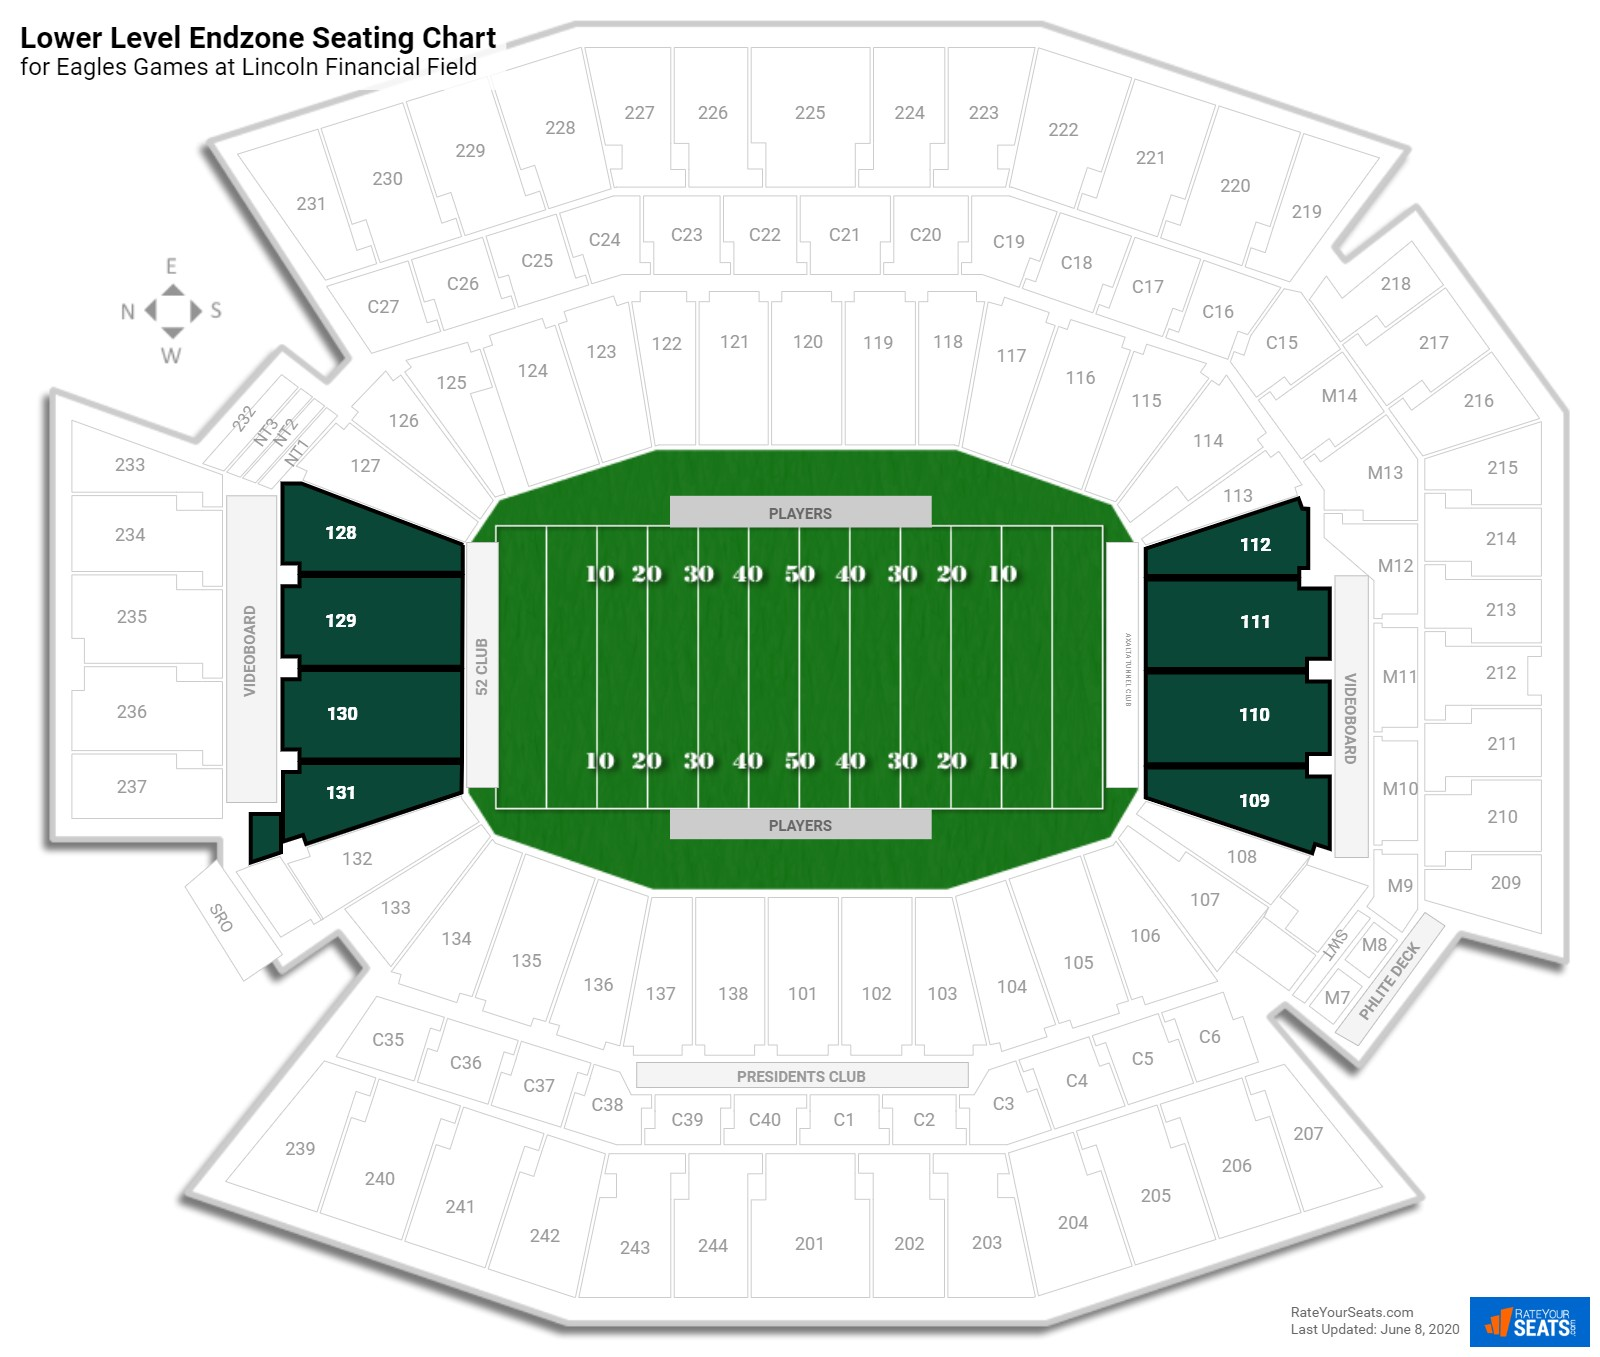 Lincoln Financial Field Lower Level Endzone seating chart